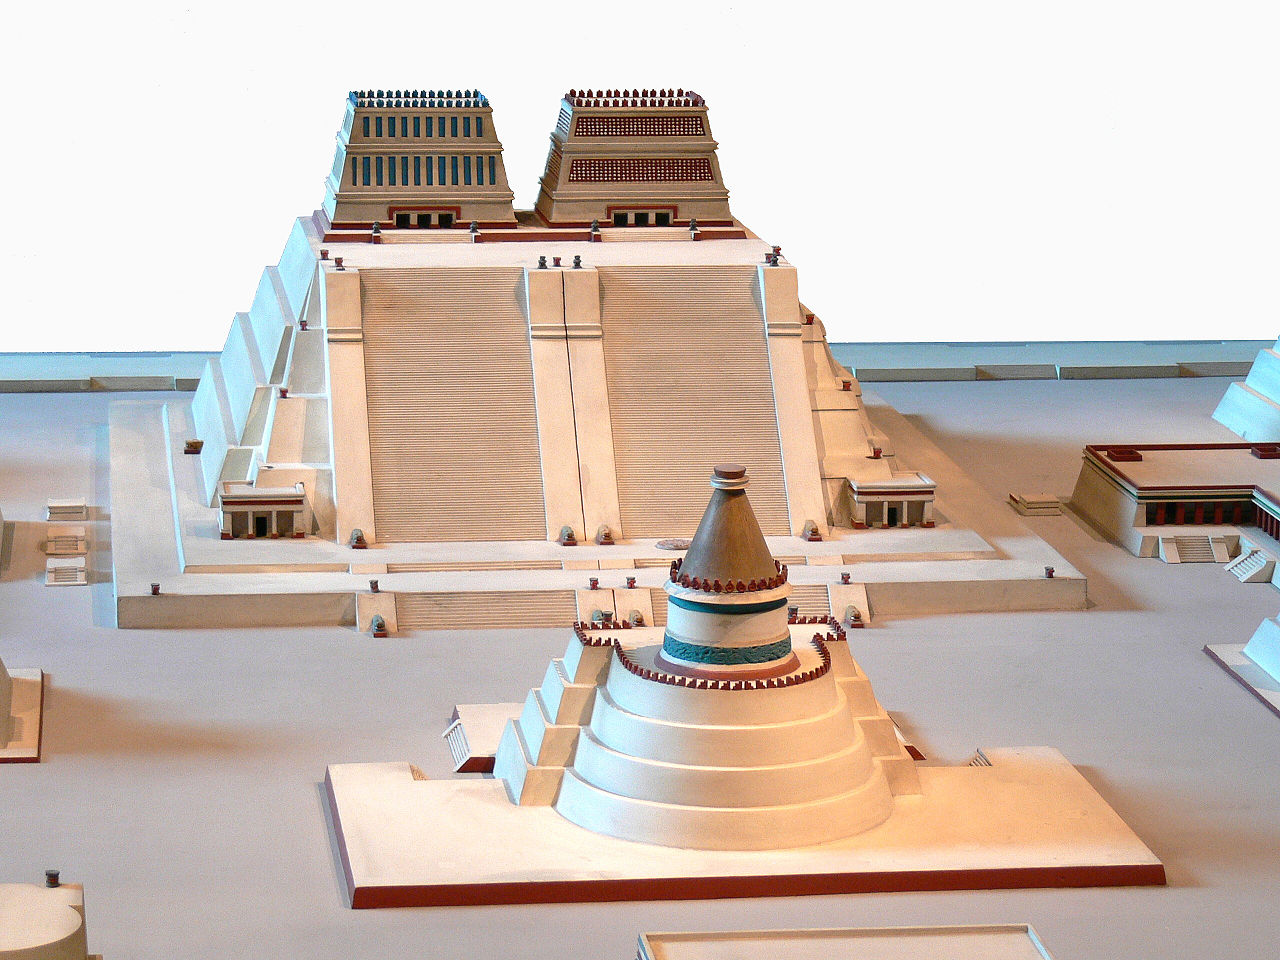 Image 10. National Museum of Anthropology in Mexico City [Mexico]. Reconstruction of the Templo Mayor of Tenochtitlan. Photo by Wolfgang Sauber, derivative work: Joyborg (talk)